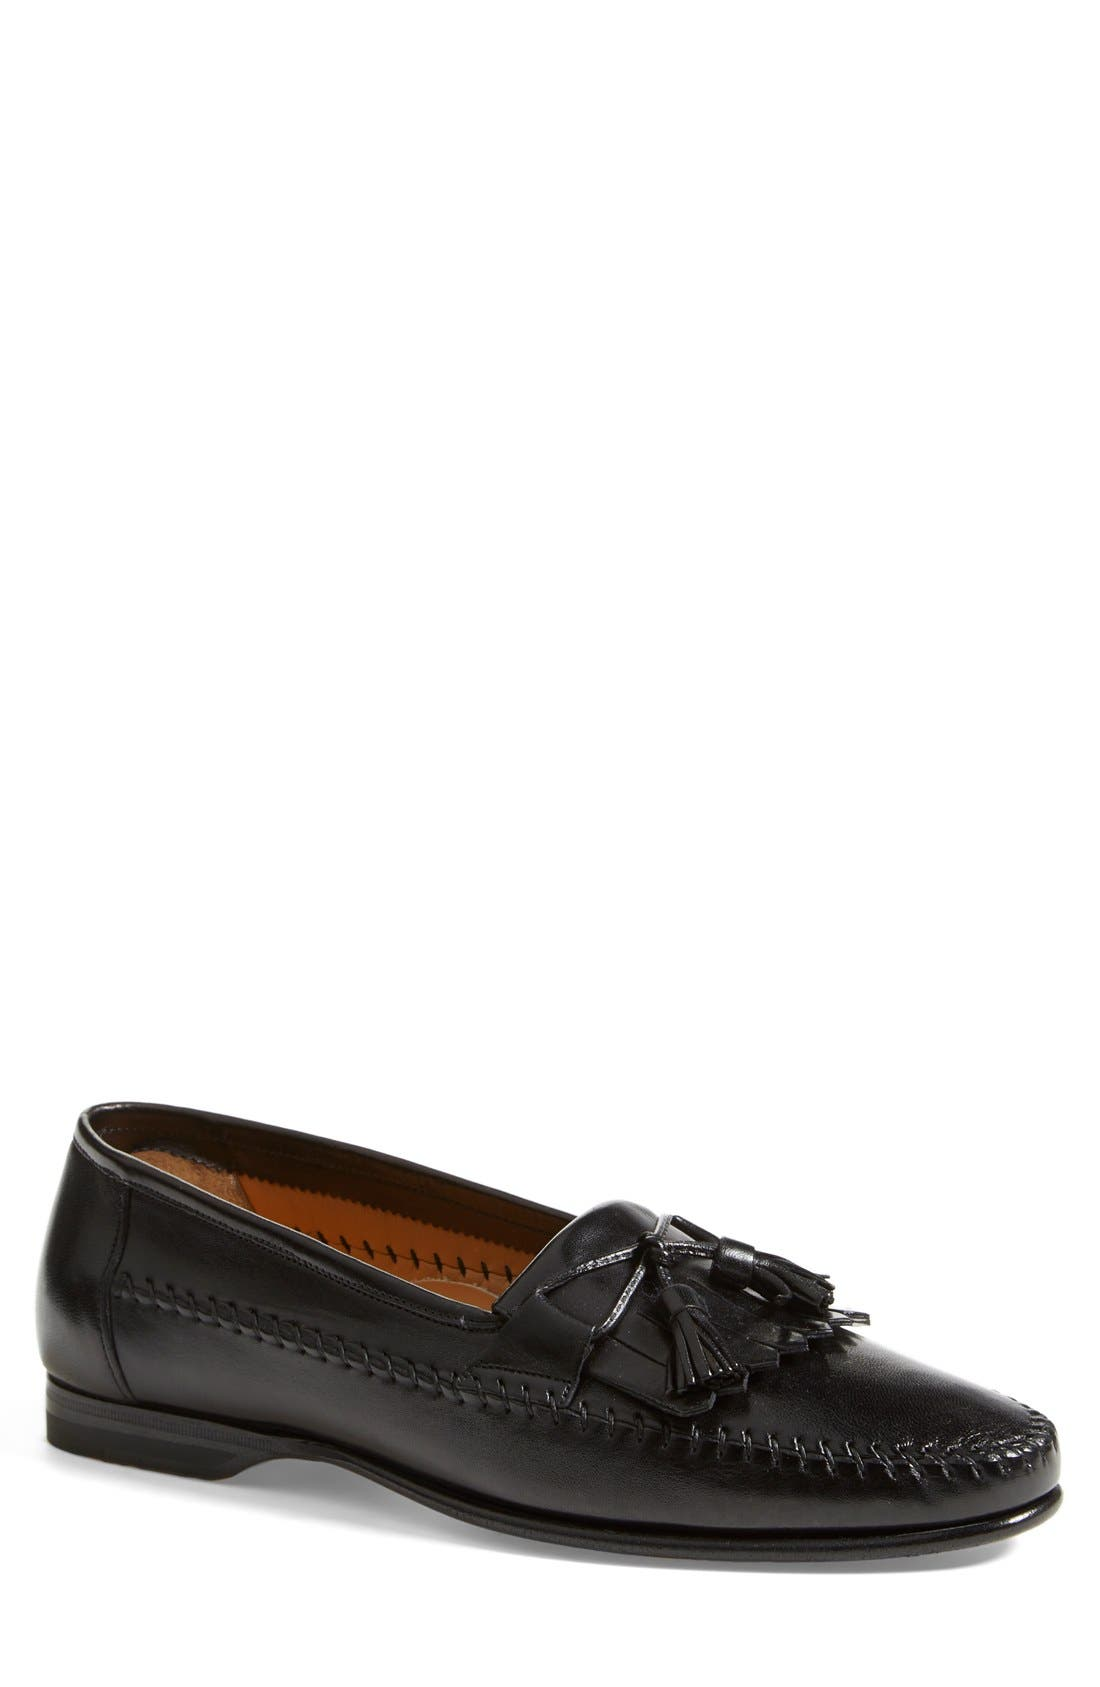 'Forester' Kiltie Tassel Loafer,                             Main thumbnail 1, color,                             001